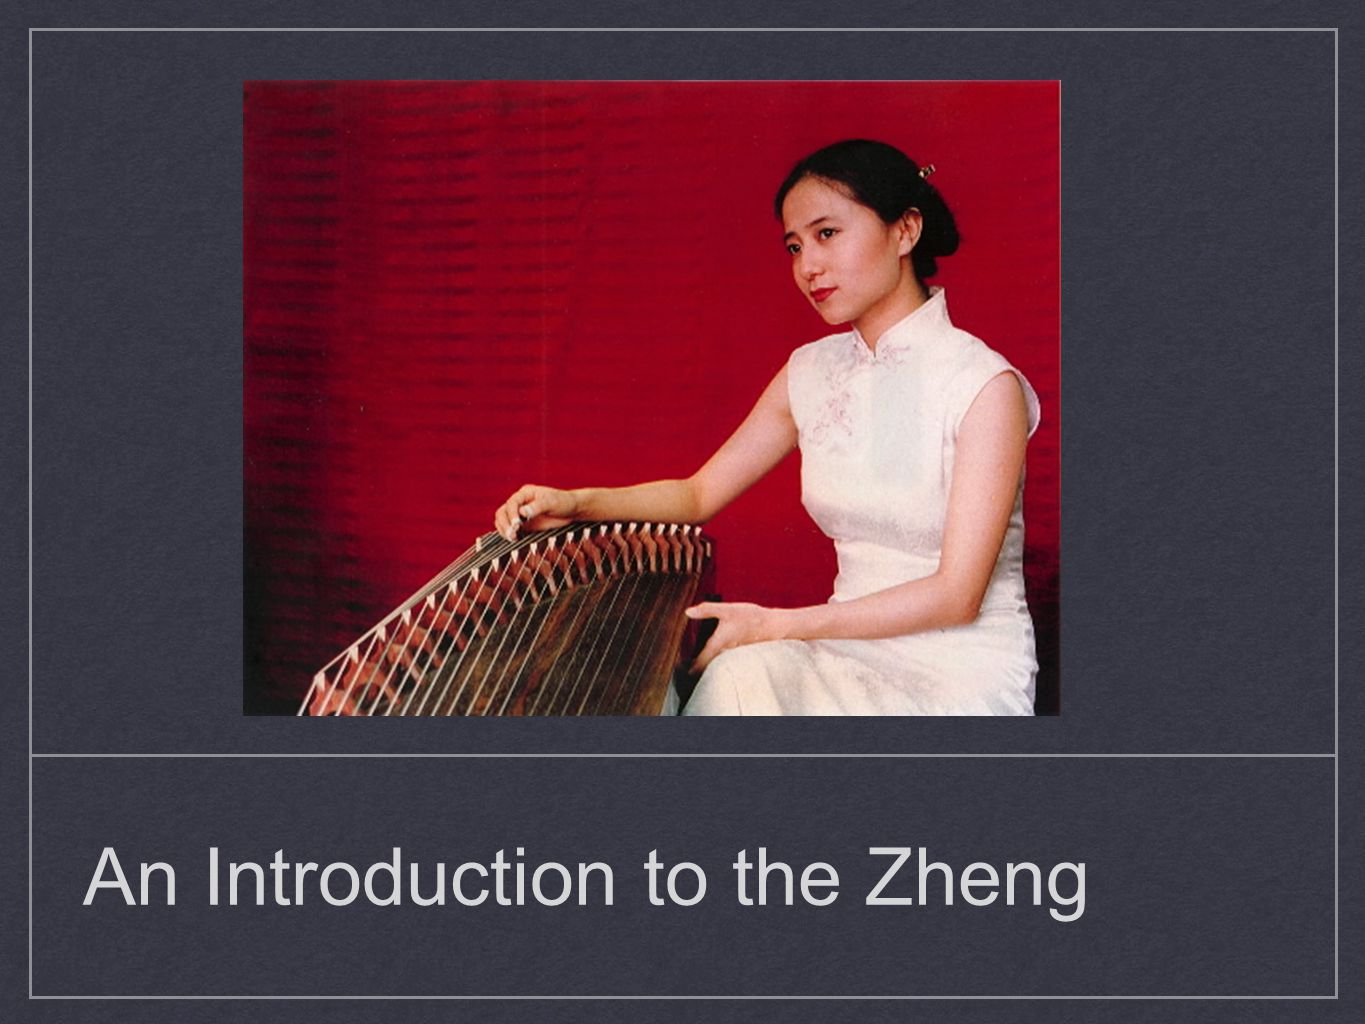 The zheng is a Chinese board zither chordophone.